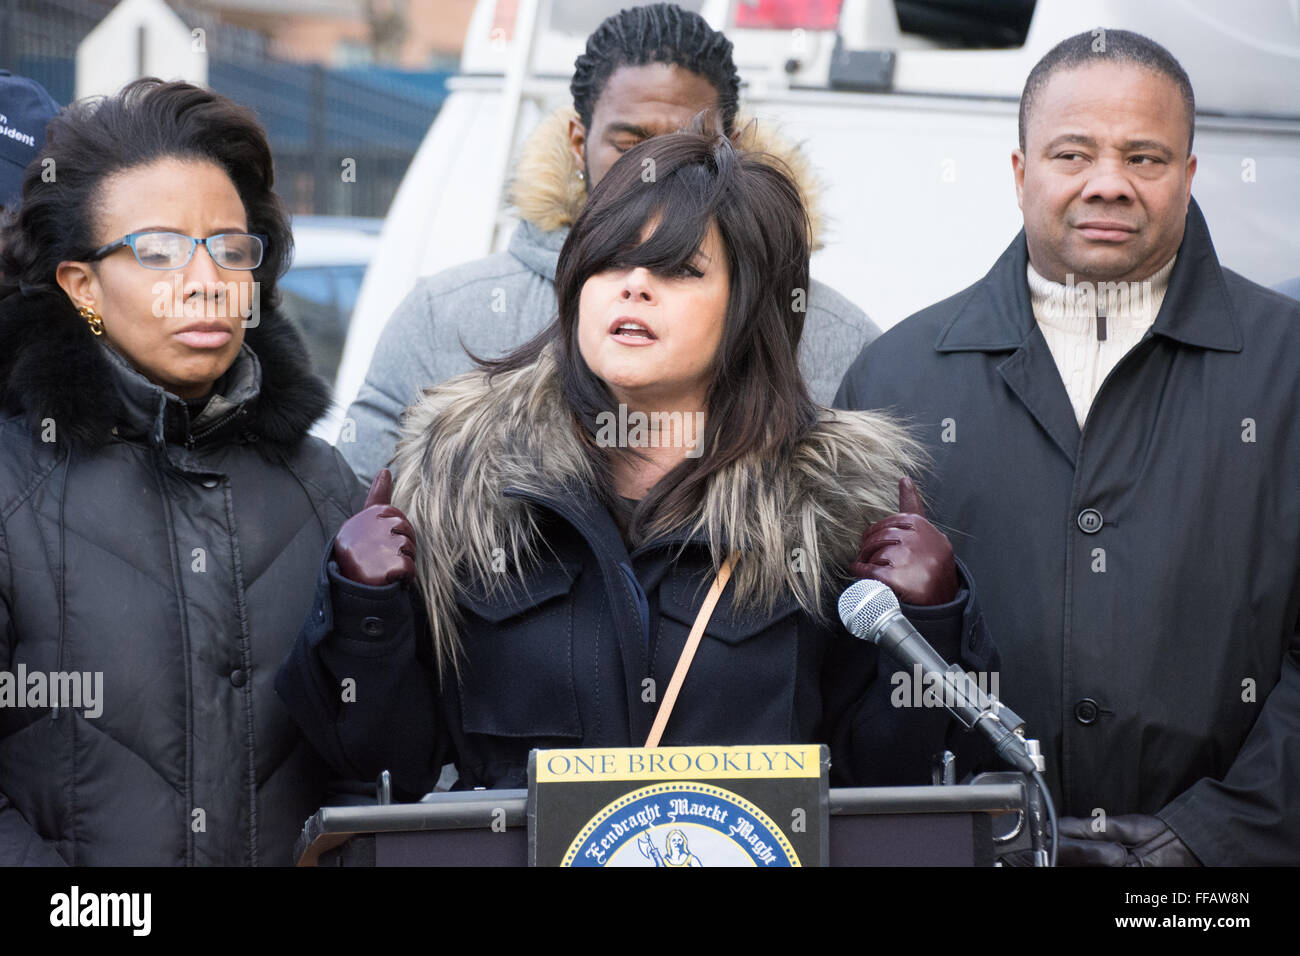 Brooklyn, USA. 11 February, 2016. Devorah Halberstam, anti-violence activist, joined elected officials and civic - Stock Image